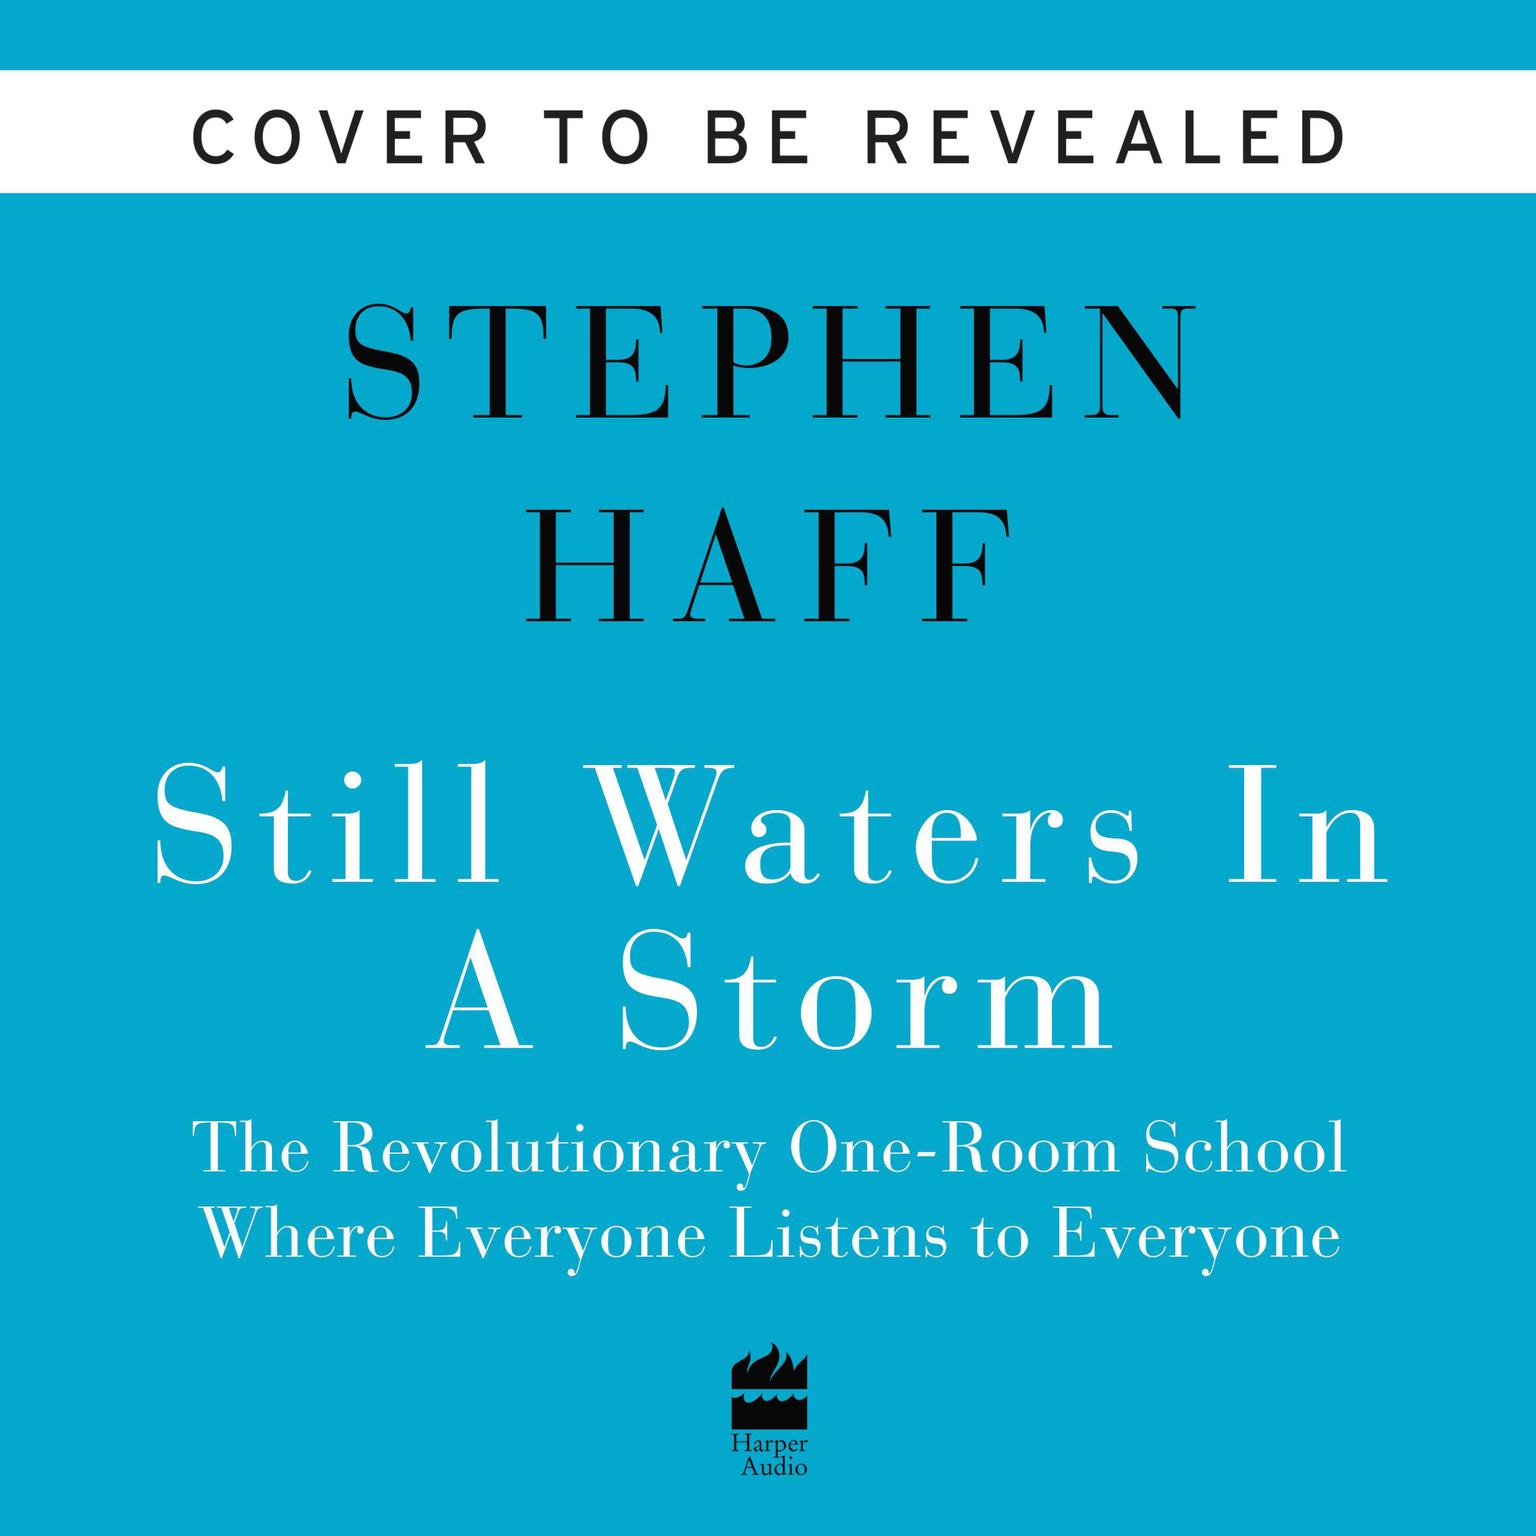 Kid Quixotes: A Group of Students, Their Teacher, and the One-Room School Where Everything Is Possible Audiobook, by Stephen Haff